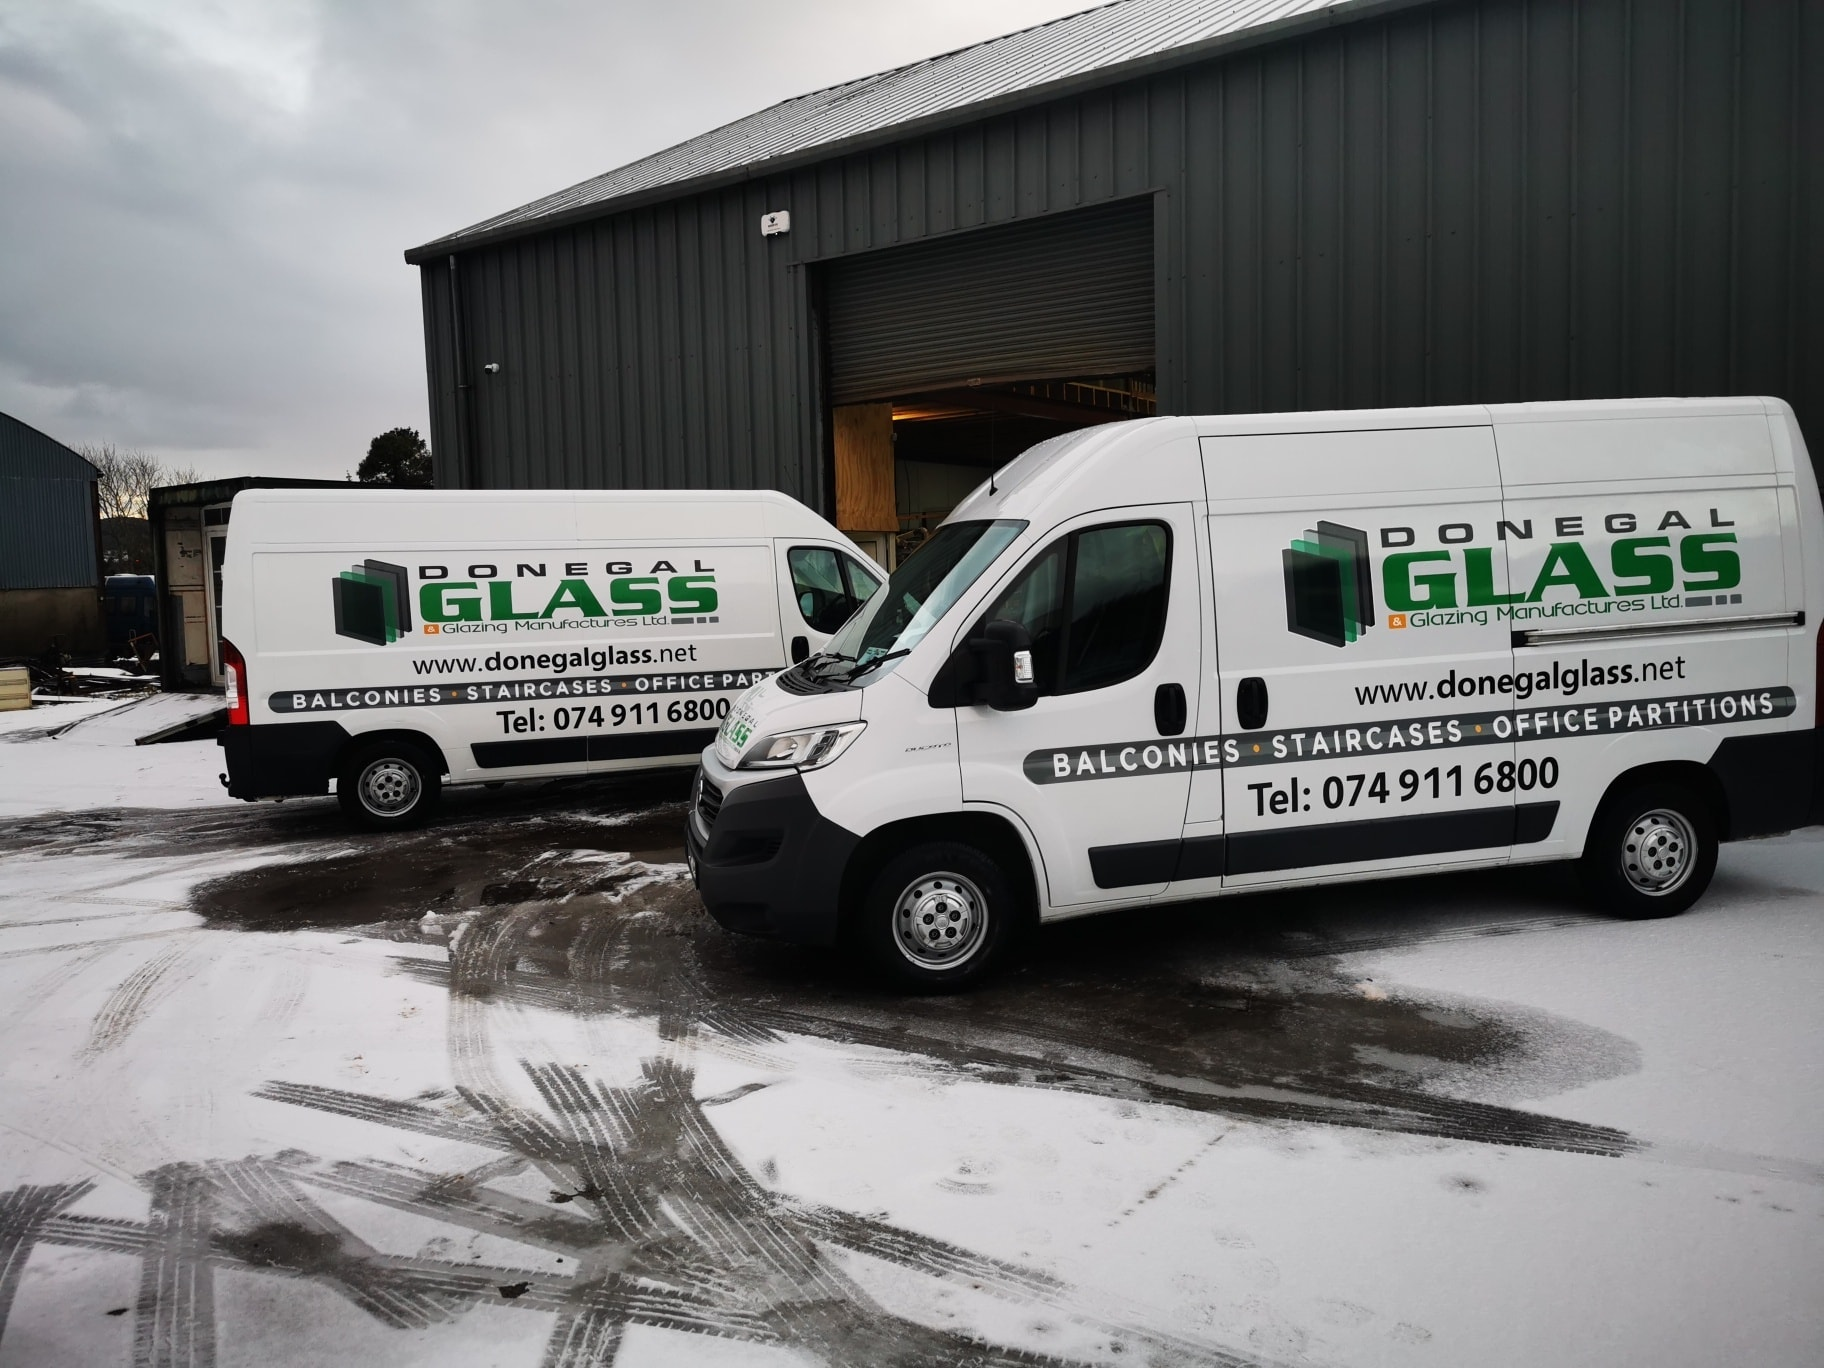 letterkenny glass and donegal glass serving the northwest